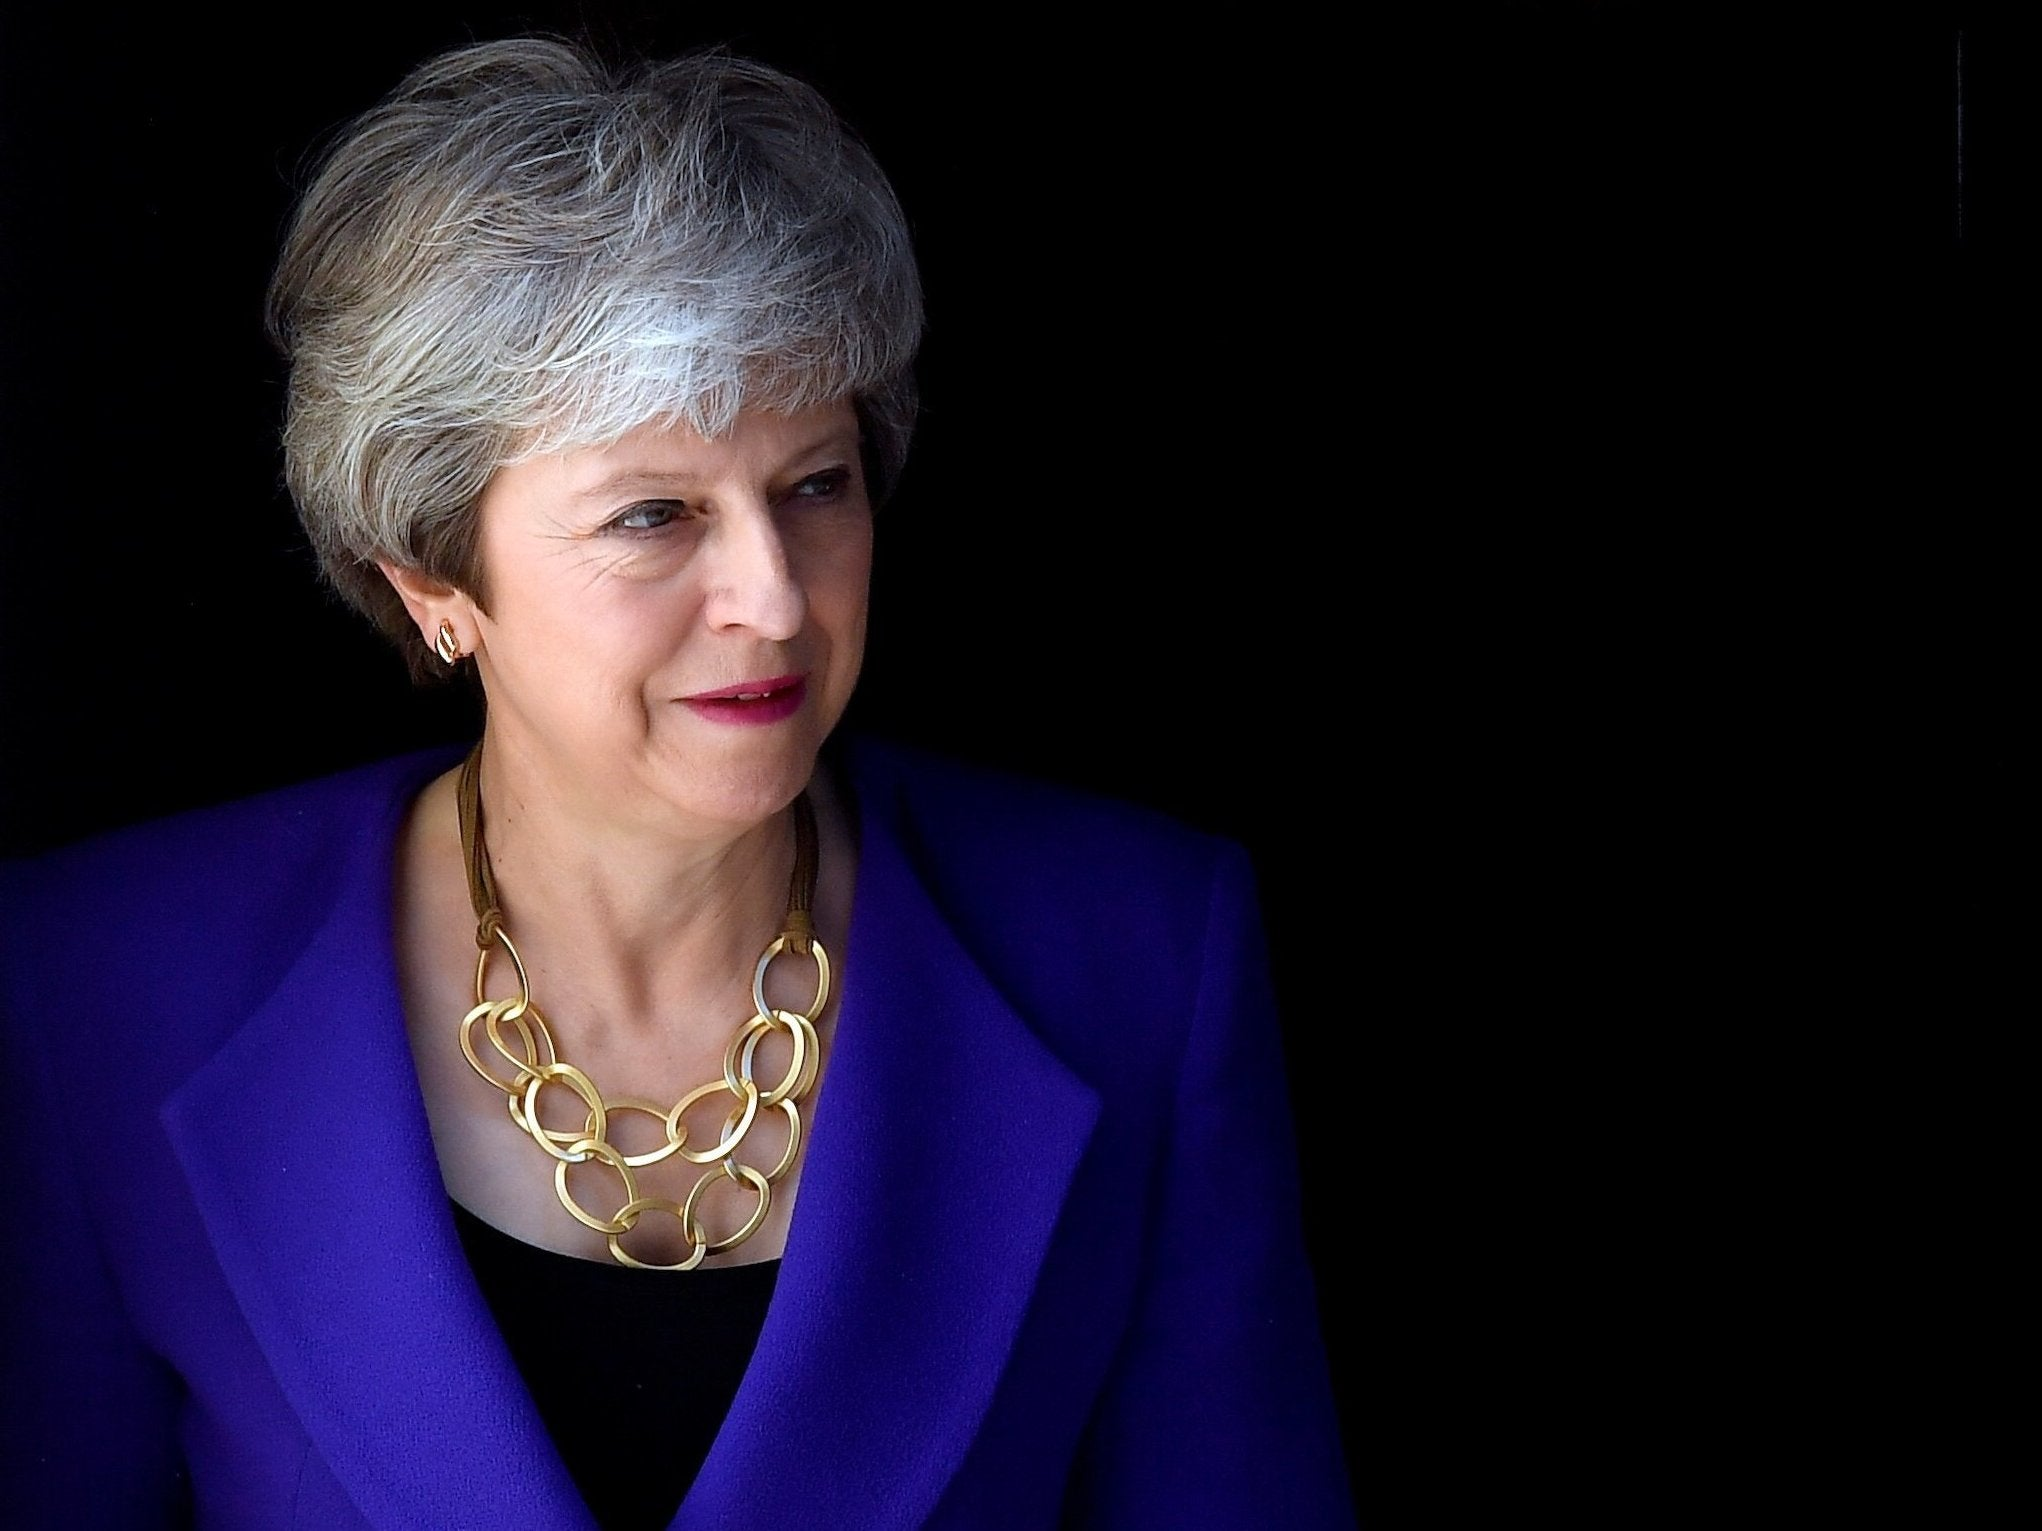 Spare your tears for Theresa May – she doesn't deserve an ounce of sympathy